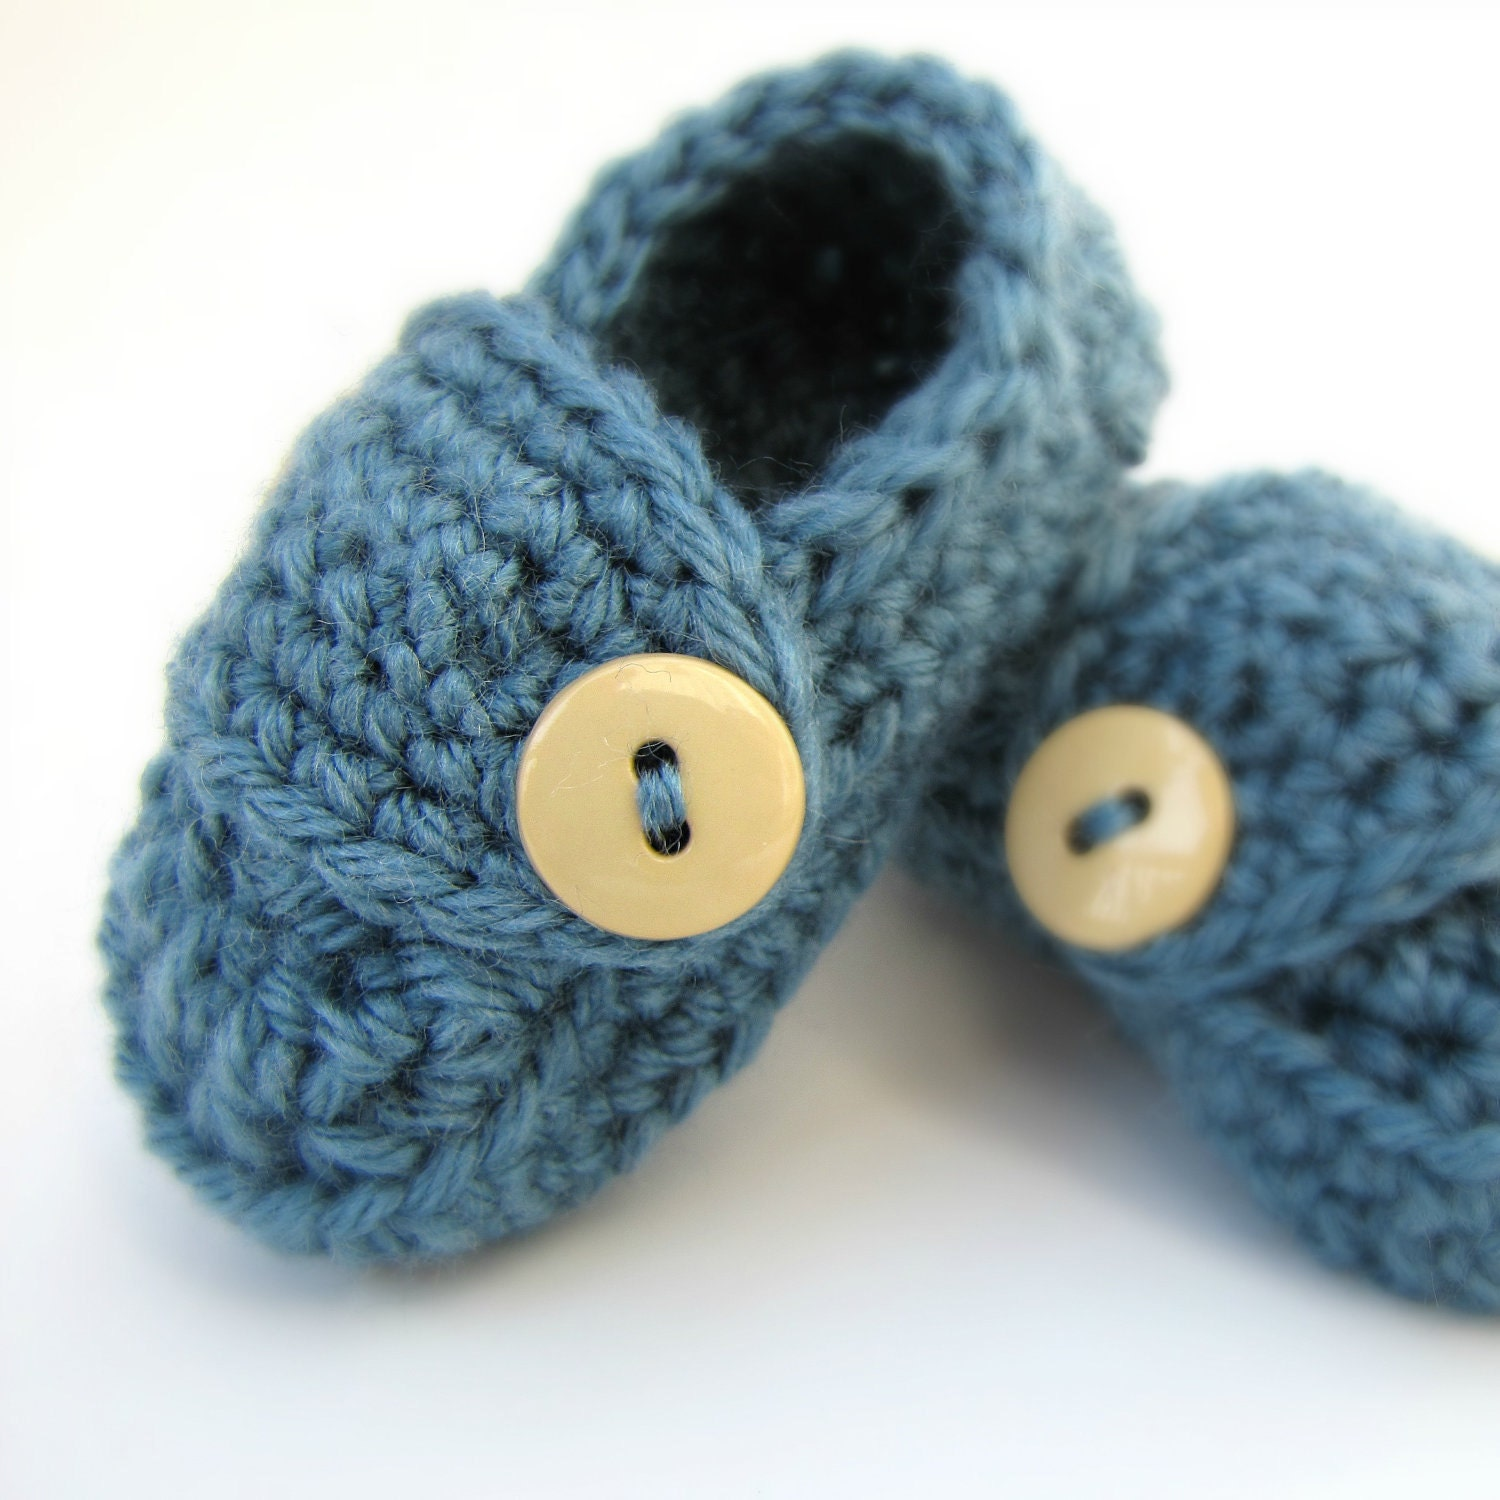 Boys Baby Booties NEWBORN BABY SHOWER gift Little Loafers for